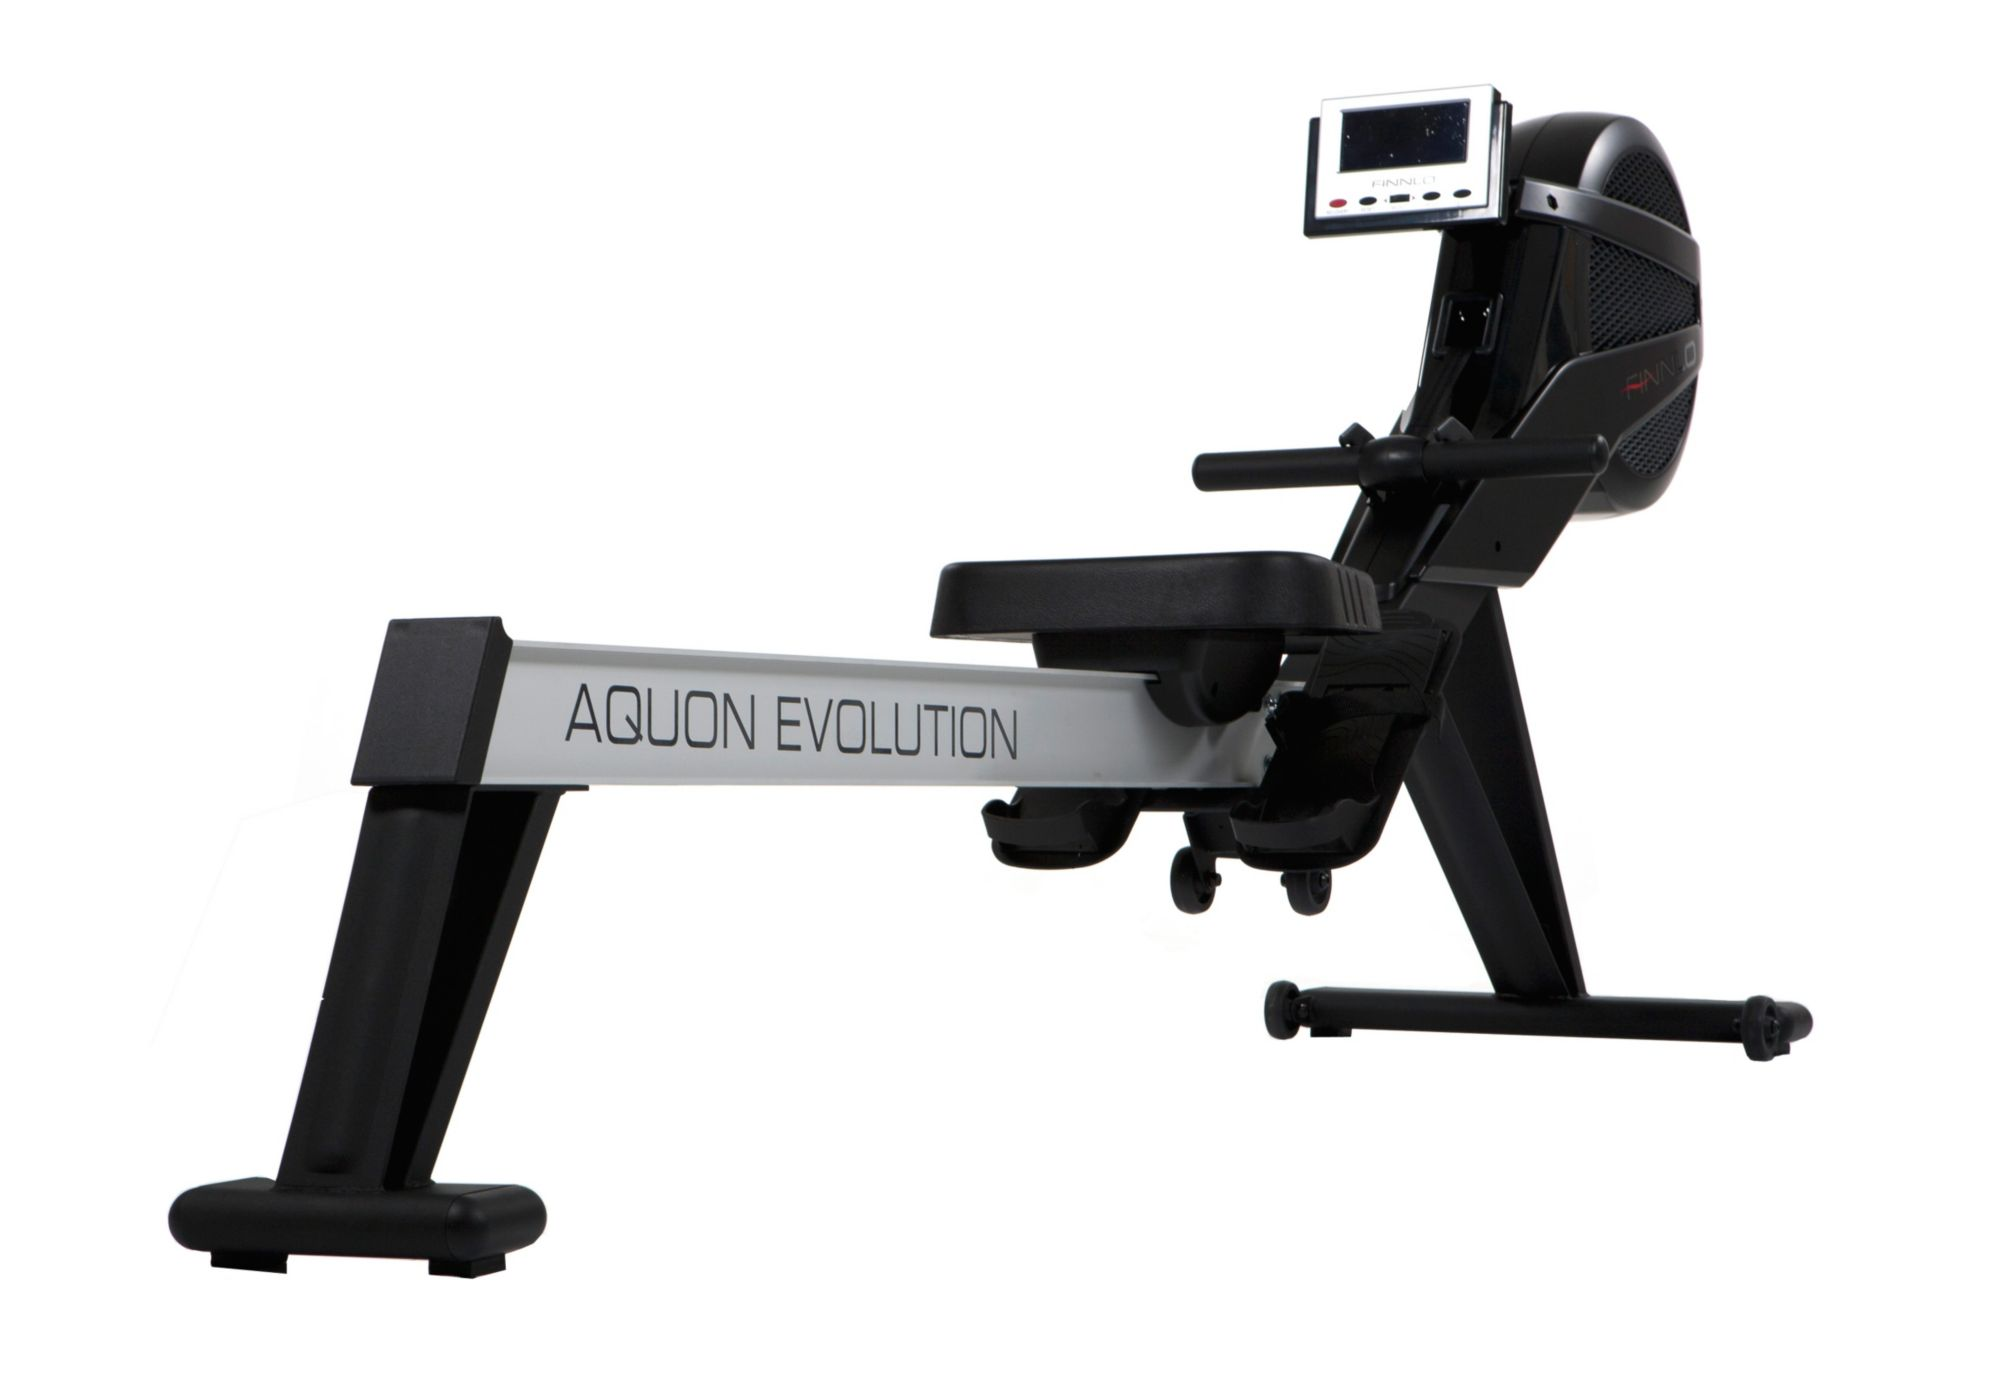 FINNLO BY HAMMER Rudergerät, »Ergometer Rower Aquon Evolution«, Finnlo by Hammer